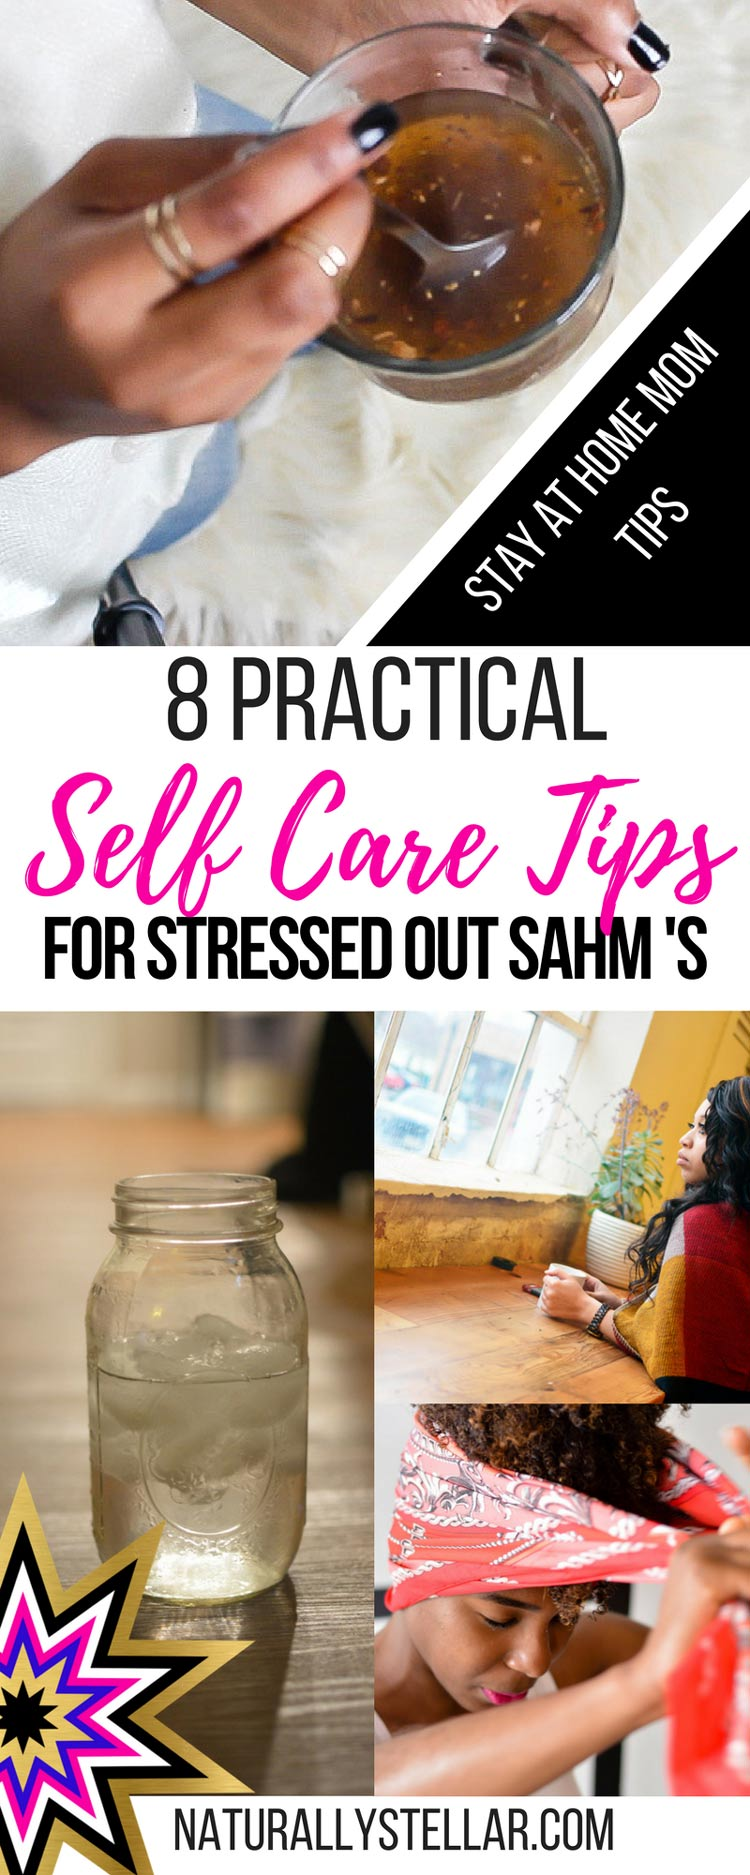 Self Care Tips For Stressed Out Stay At Home Moms | Naturally Stellar